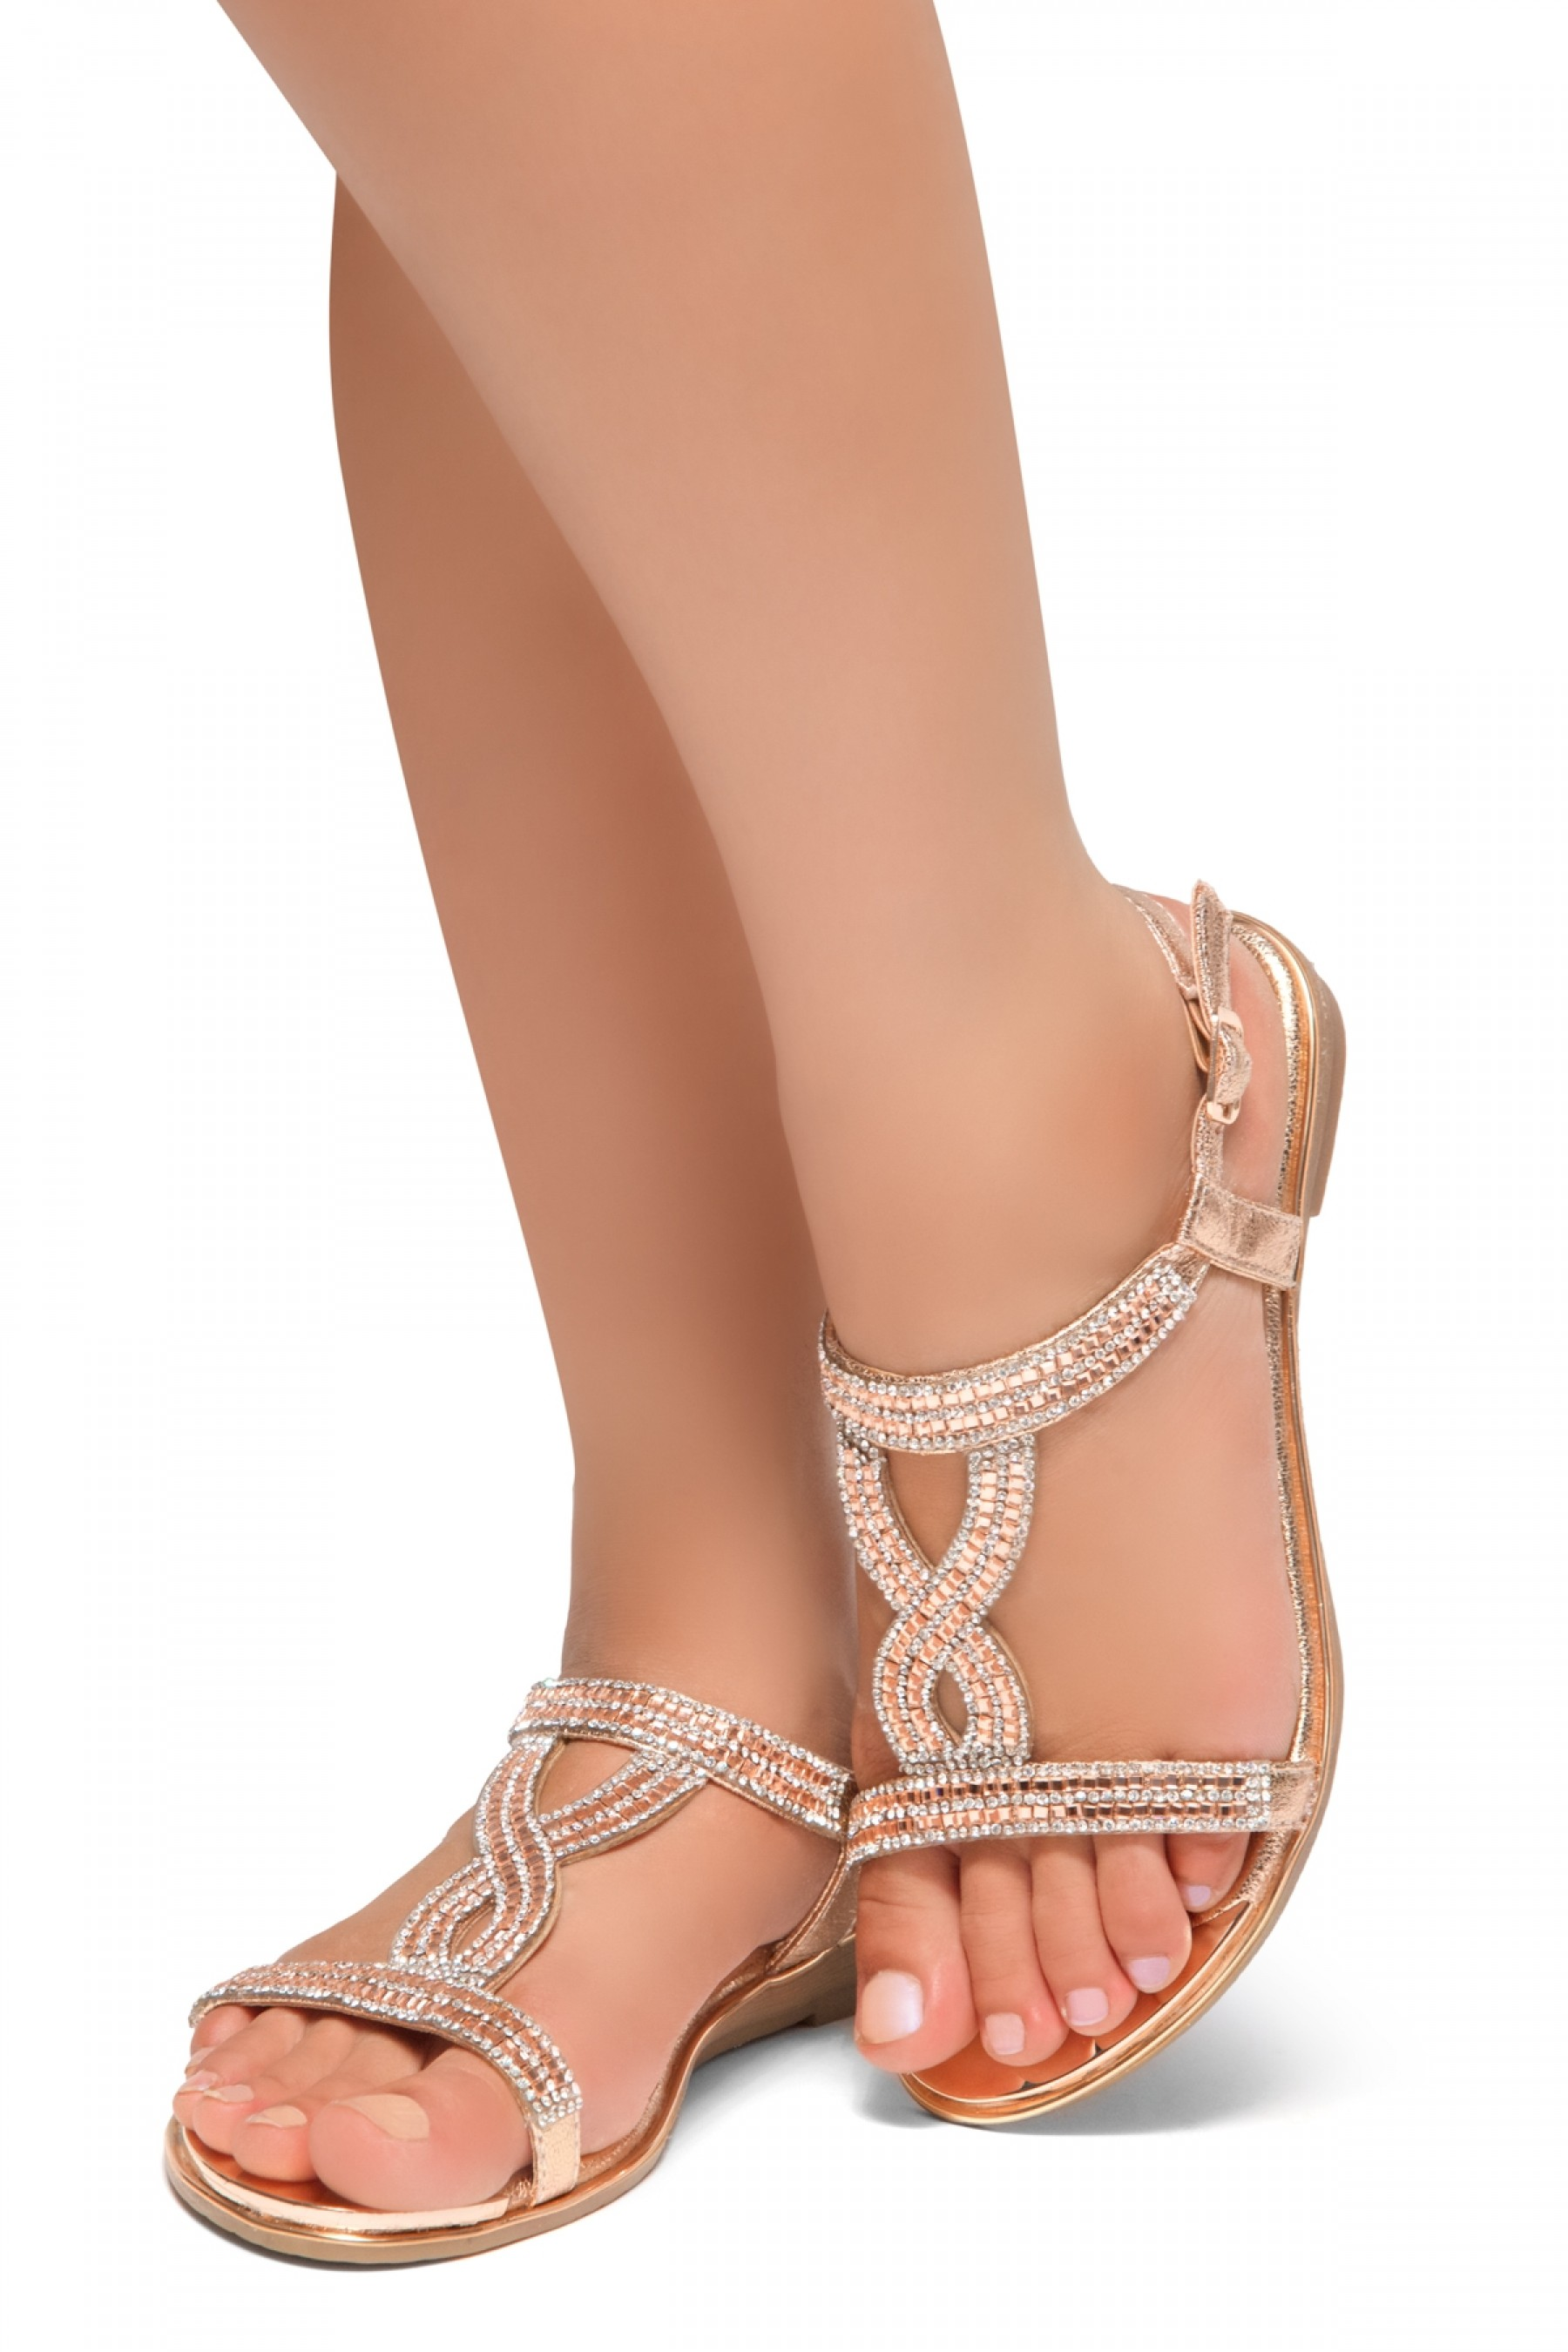 HerStyle Caterinnaa-Rhinestone Details, Open Toe, Open Back Sandals (RoseGold)